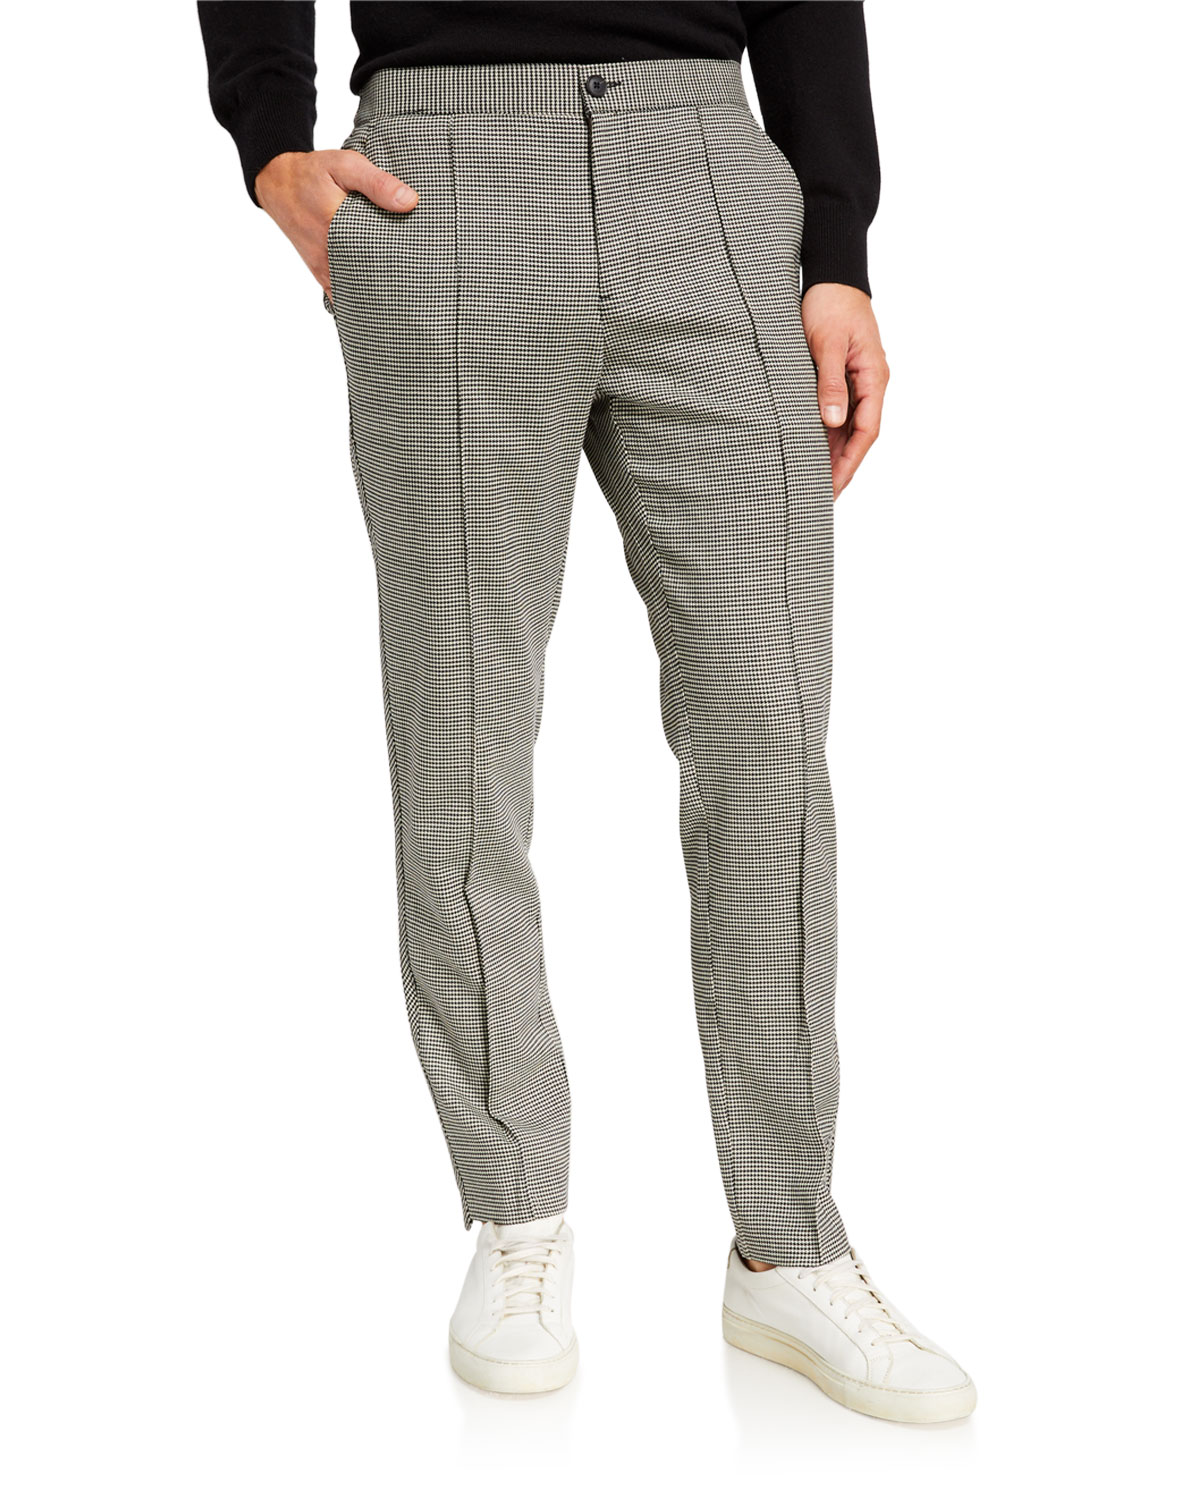 Ovadia & Sons Pants MEN'S PLEATED WOOL HOUNDSTOOTH PANTS